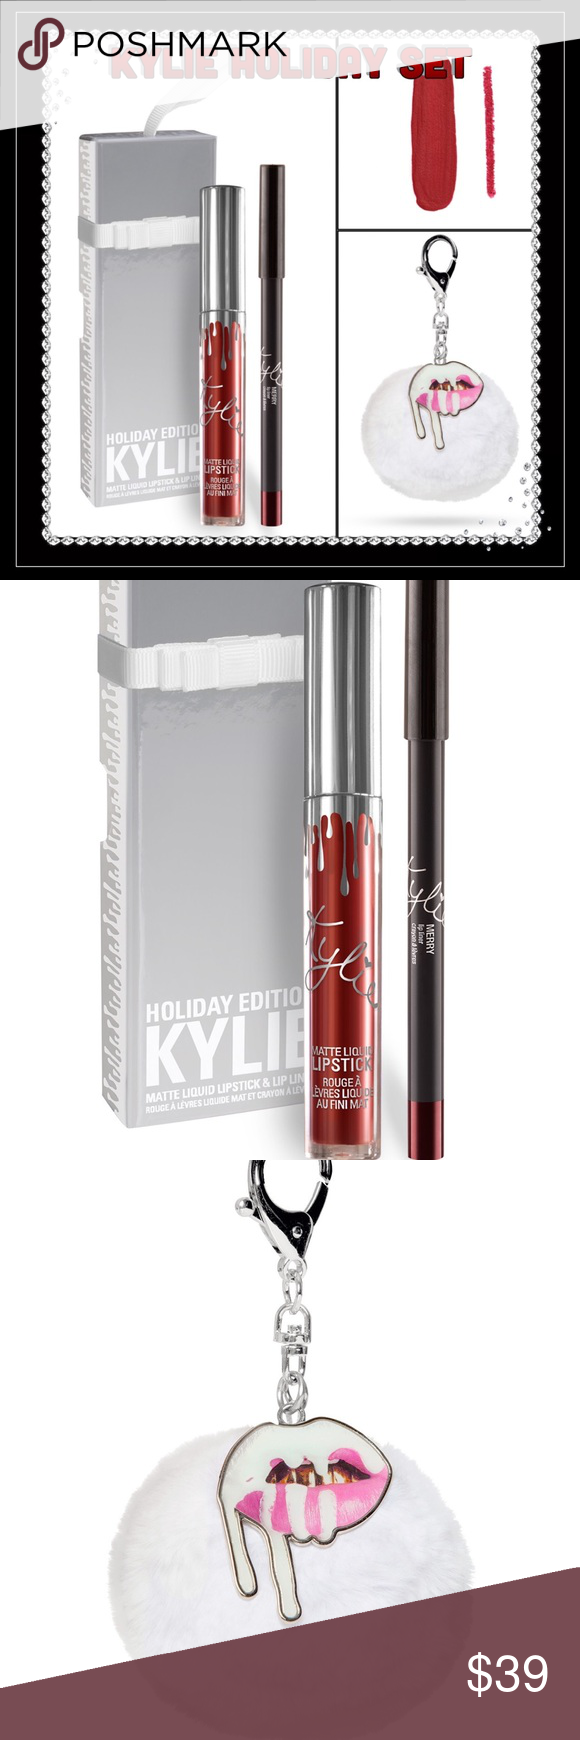 Kylie Cosmetics Holiday Set Contains: 1 Matte Liquid Lipstick (0.11 fl oz./oz. liq / 3.25 ml) and 1 Pencil Lip Liner (net wt./ poids net  .03 oz/ 1.0g). This Lip Kit comes with a Matte Liquid Lipstick and matching Lip Liner. This special shade is infused with diamond powder and packaged in limited edition silver packaging for the holiday season. Merry is a deep rich red.                   You will also get the adorable Limited Edition Pom Pom Keychain! No low ballers or trades. Use the offer…